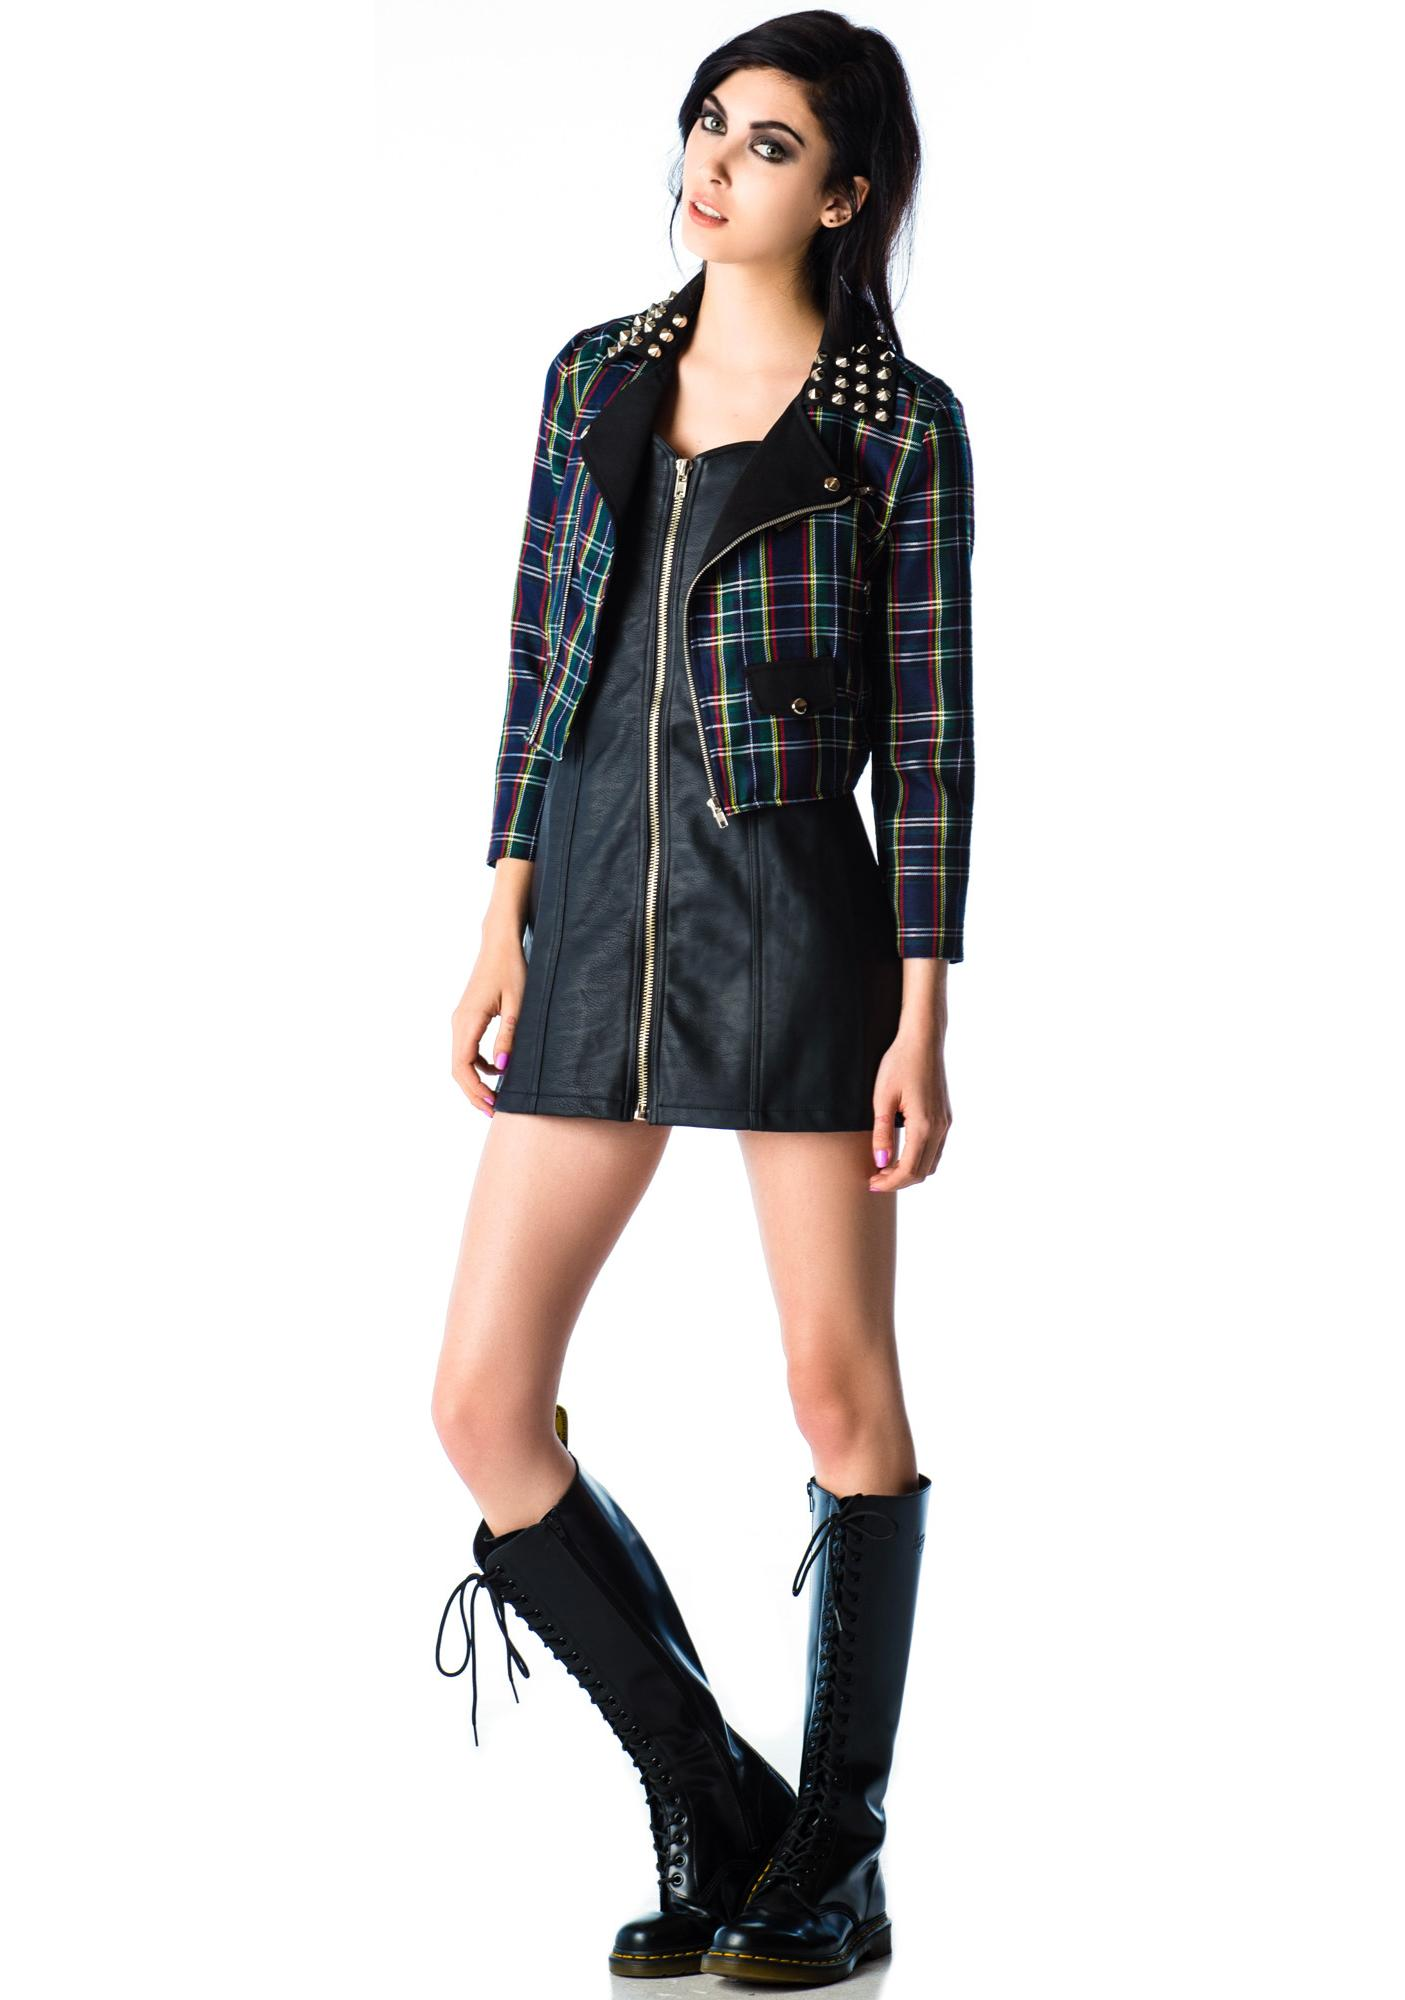 Lip Service Angst Plaid Studded Jacket